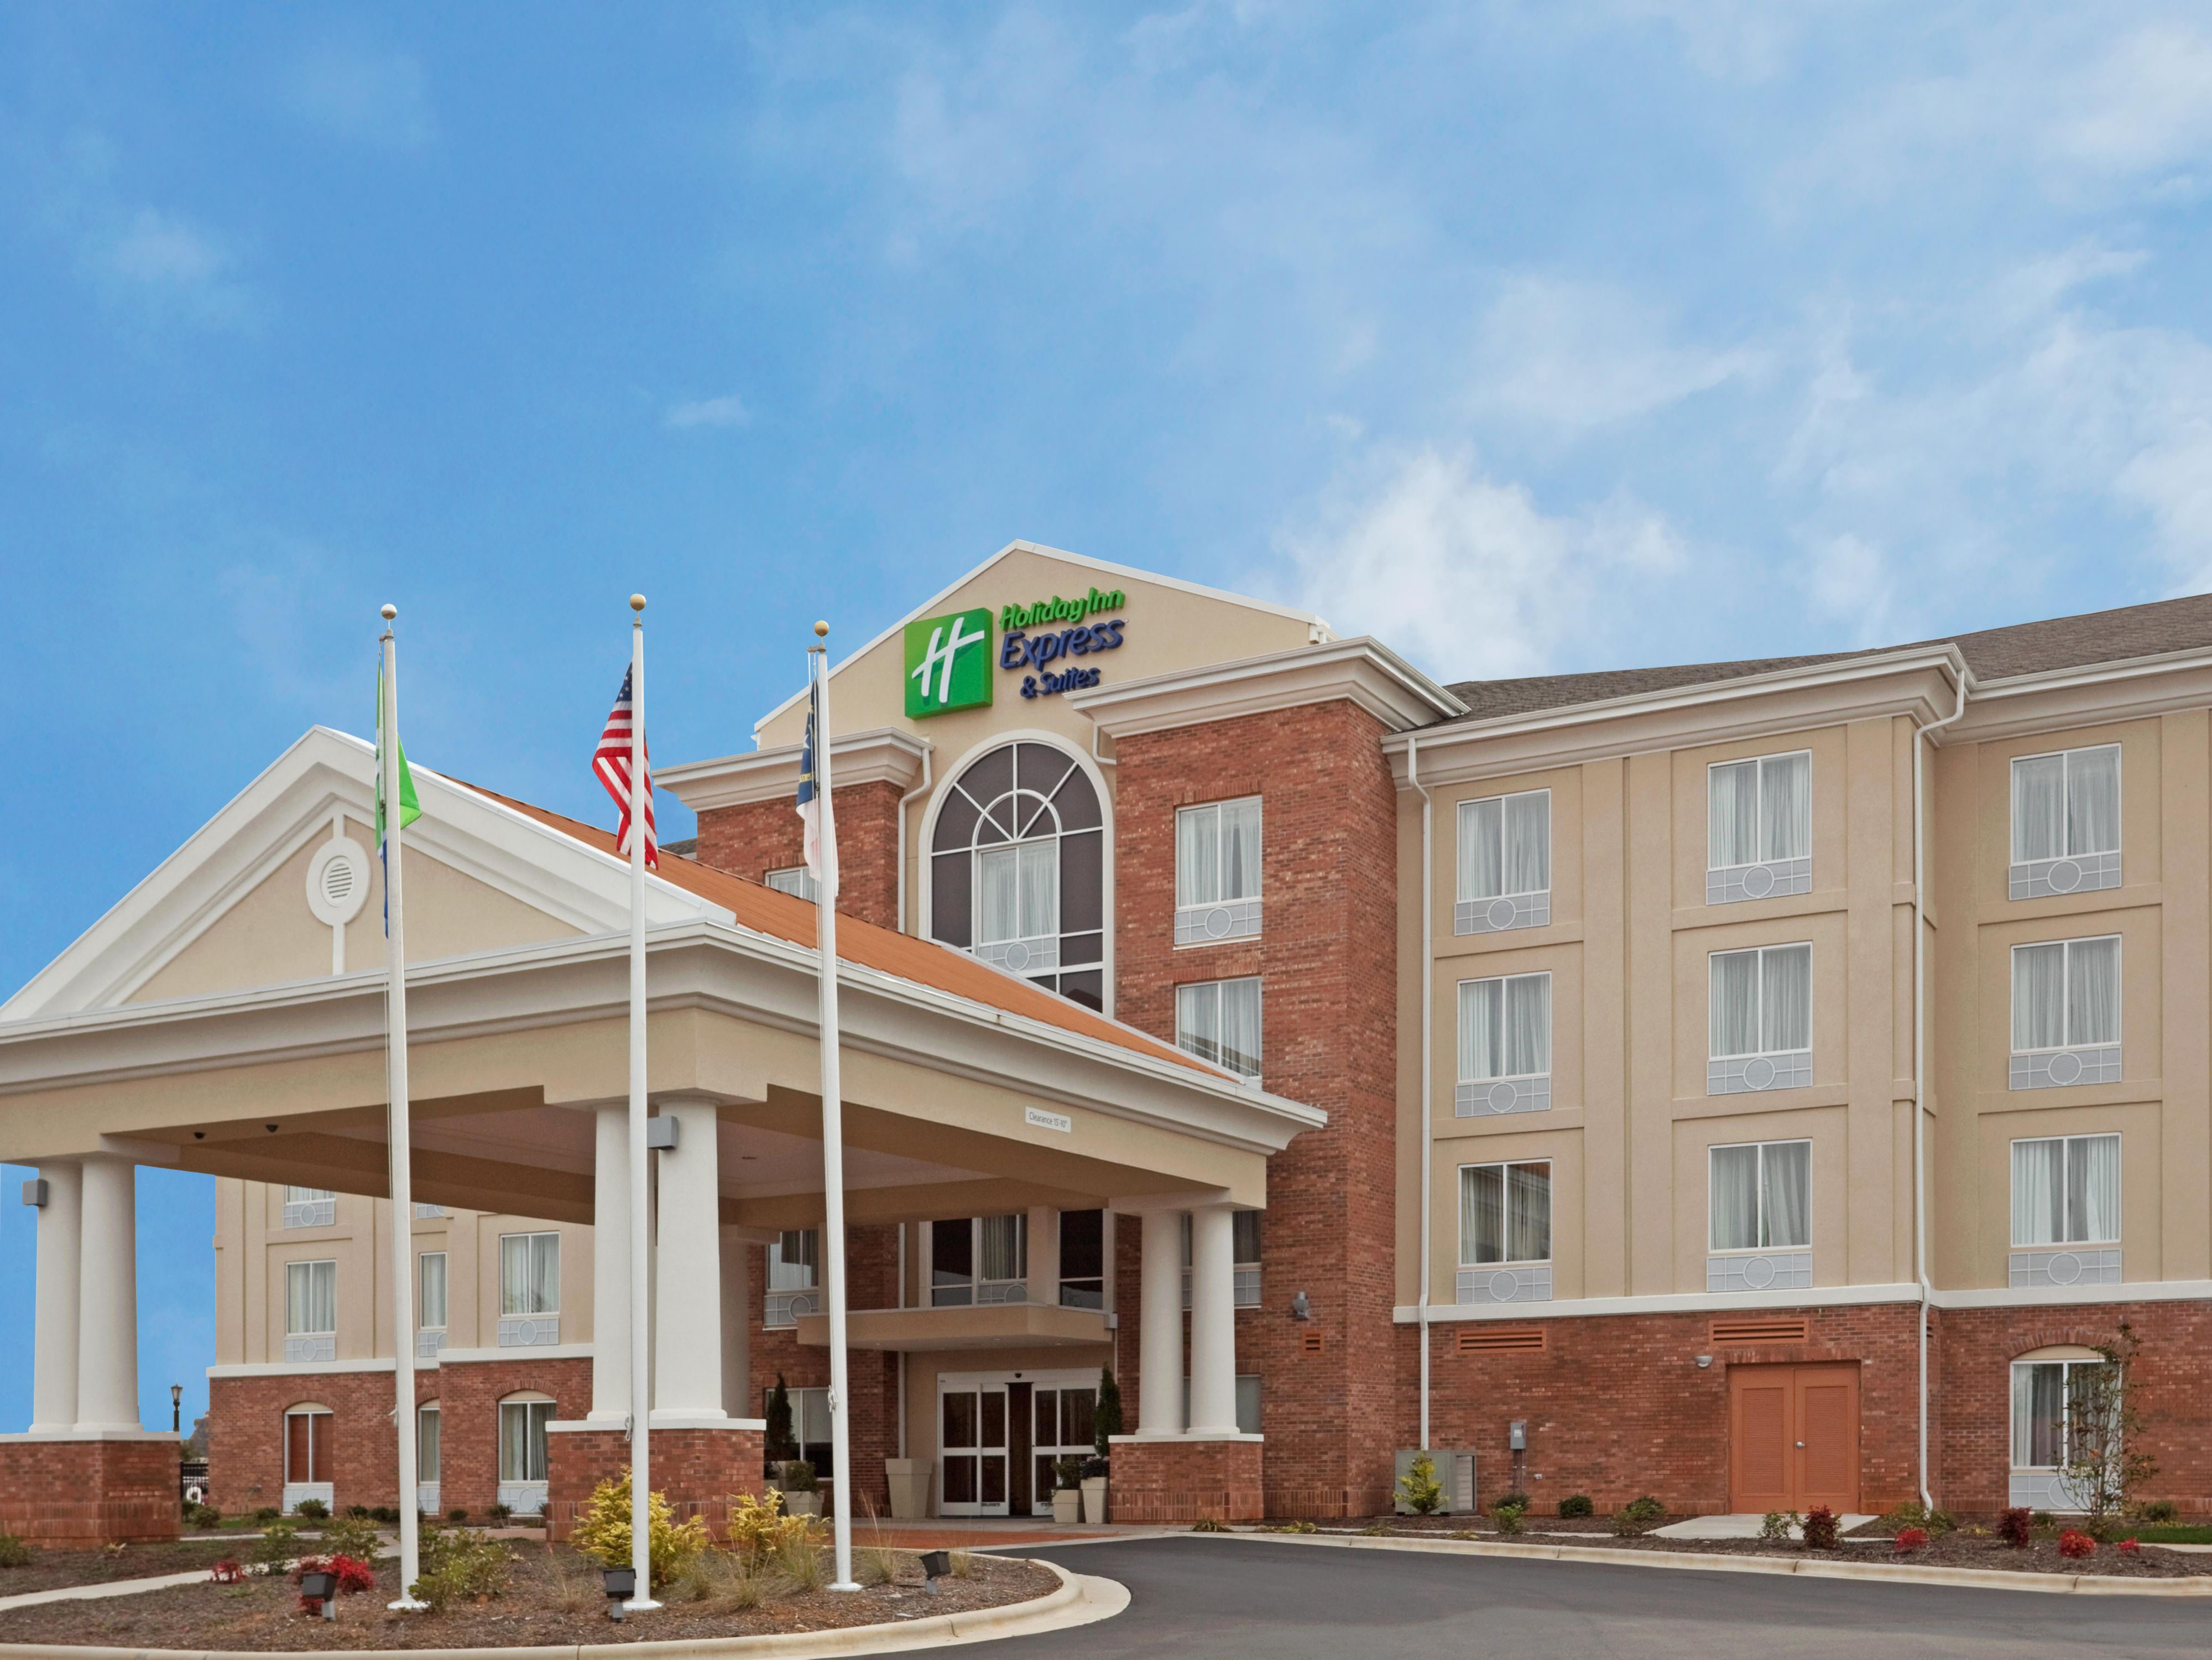 Welcome to the Holiday Inn Express Hotel & Suites.